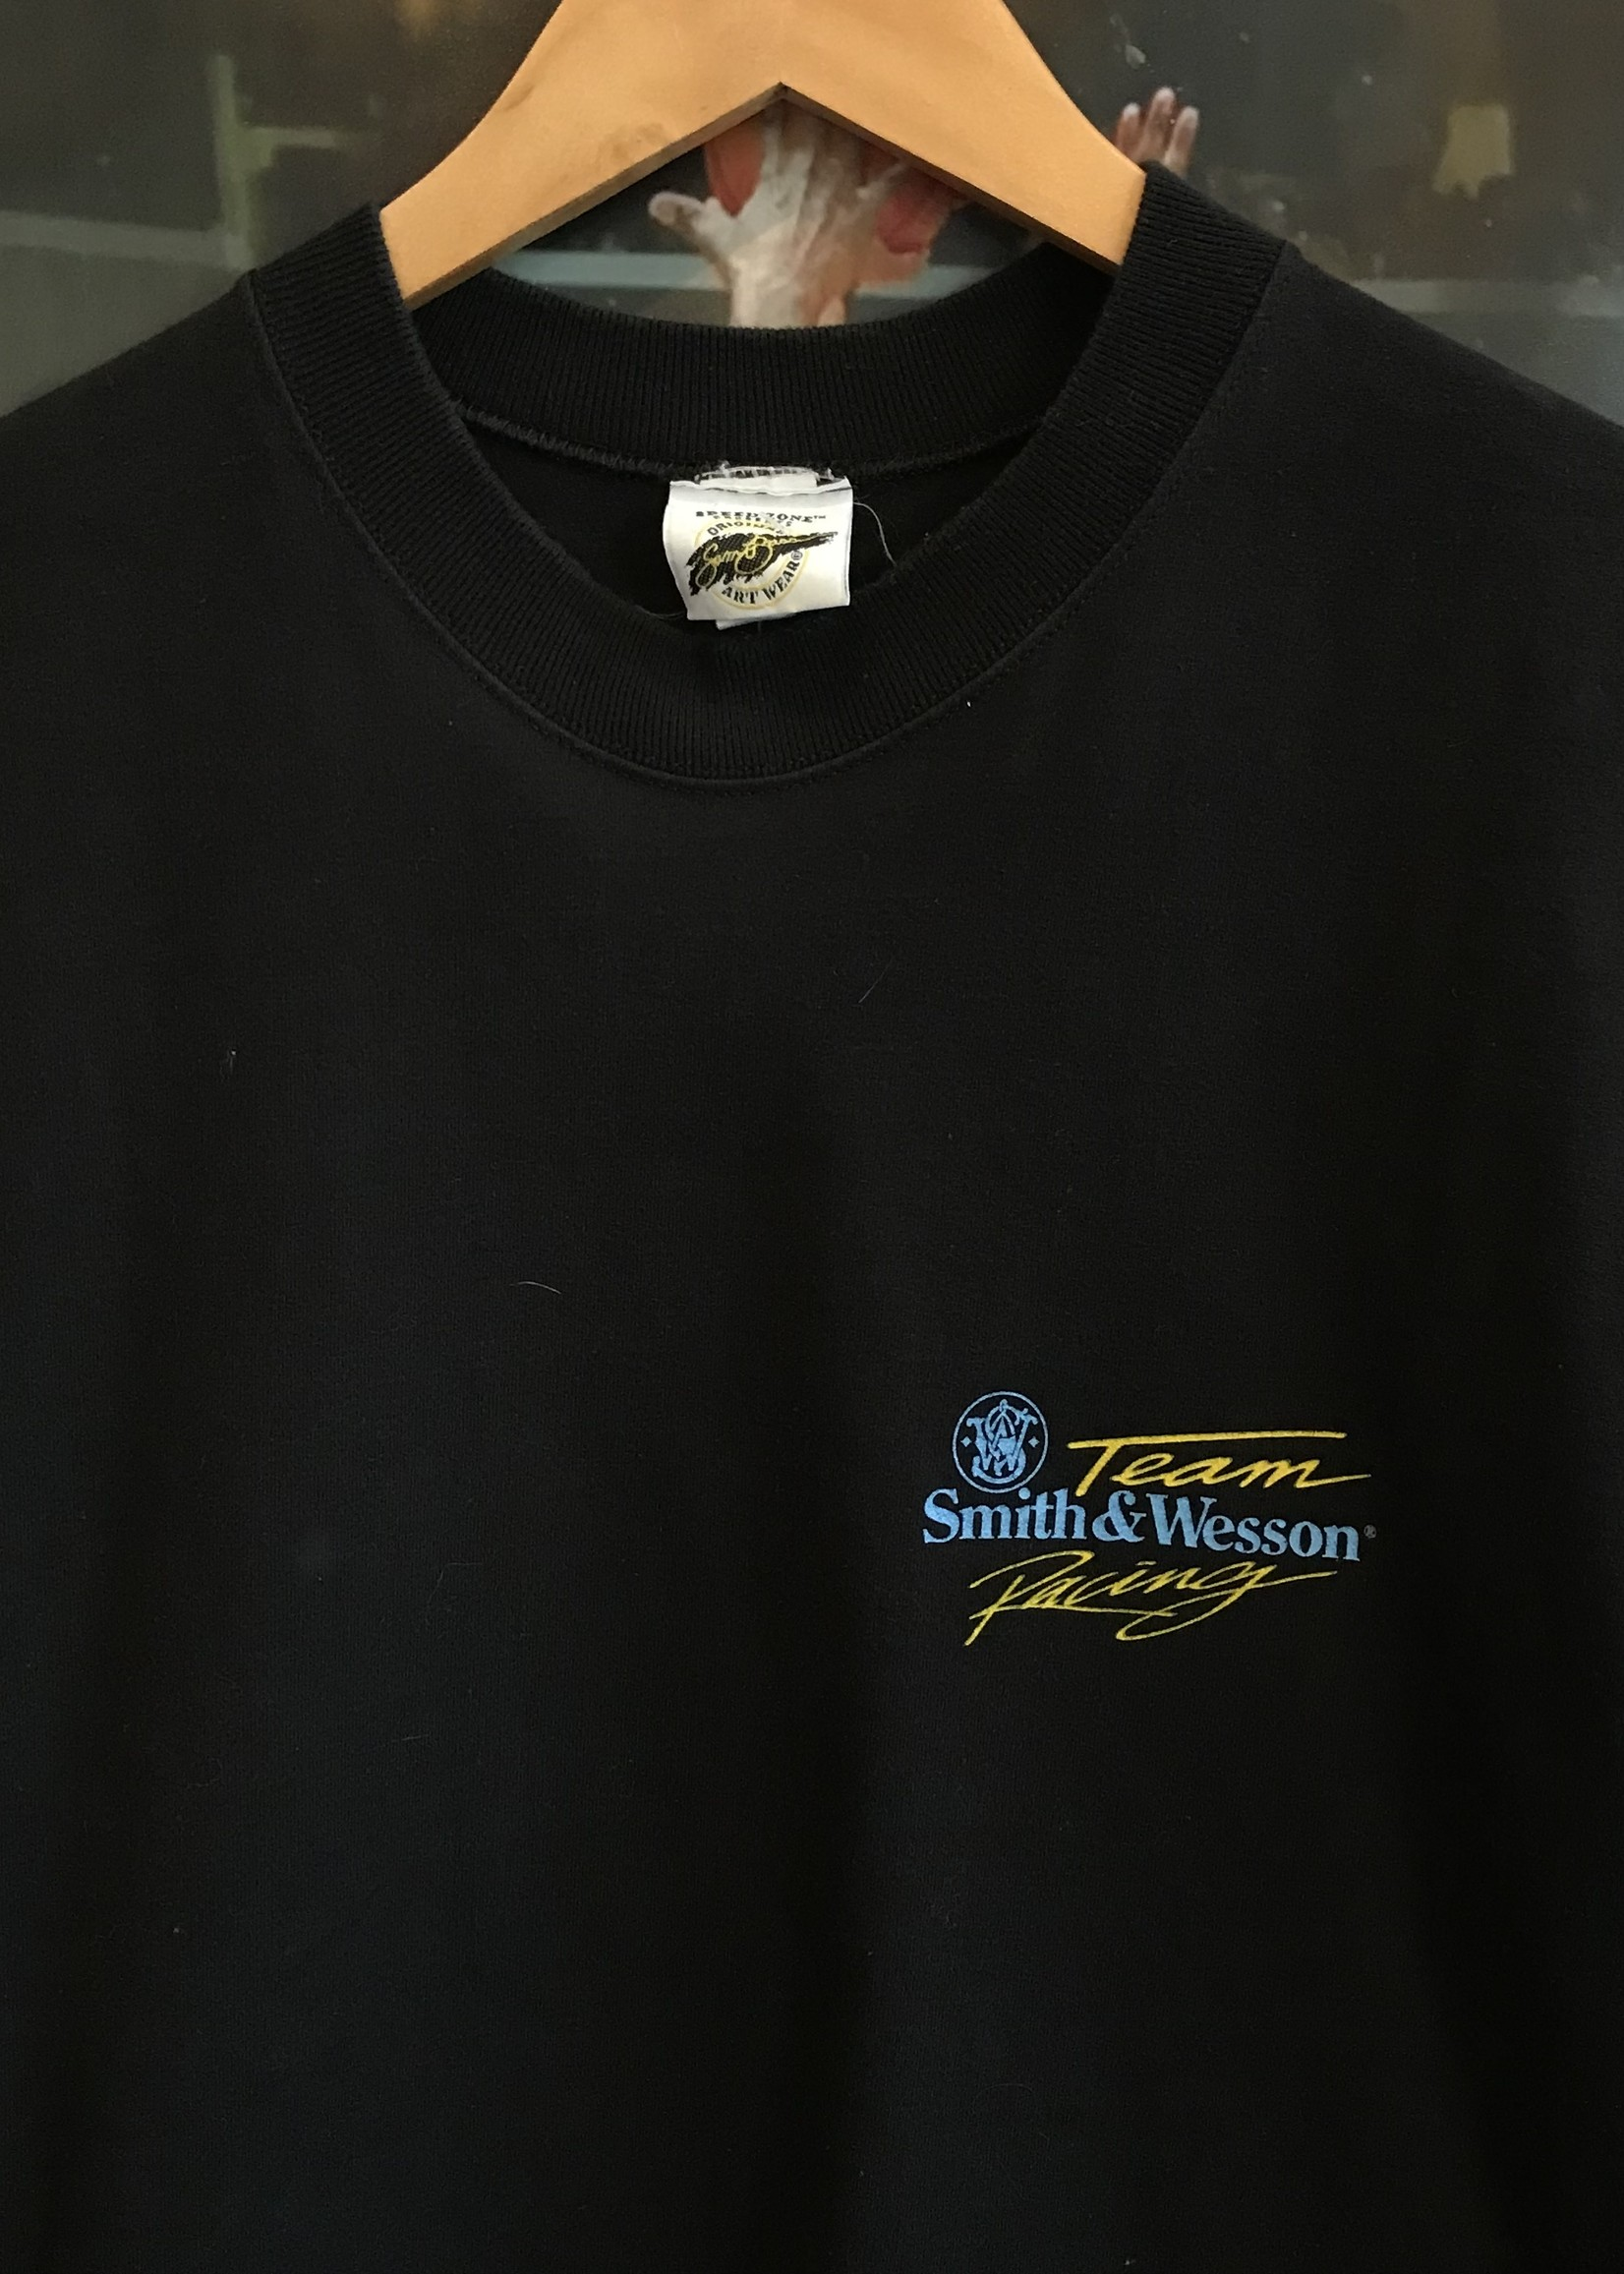 4678smith and wesson racing tee sz. L